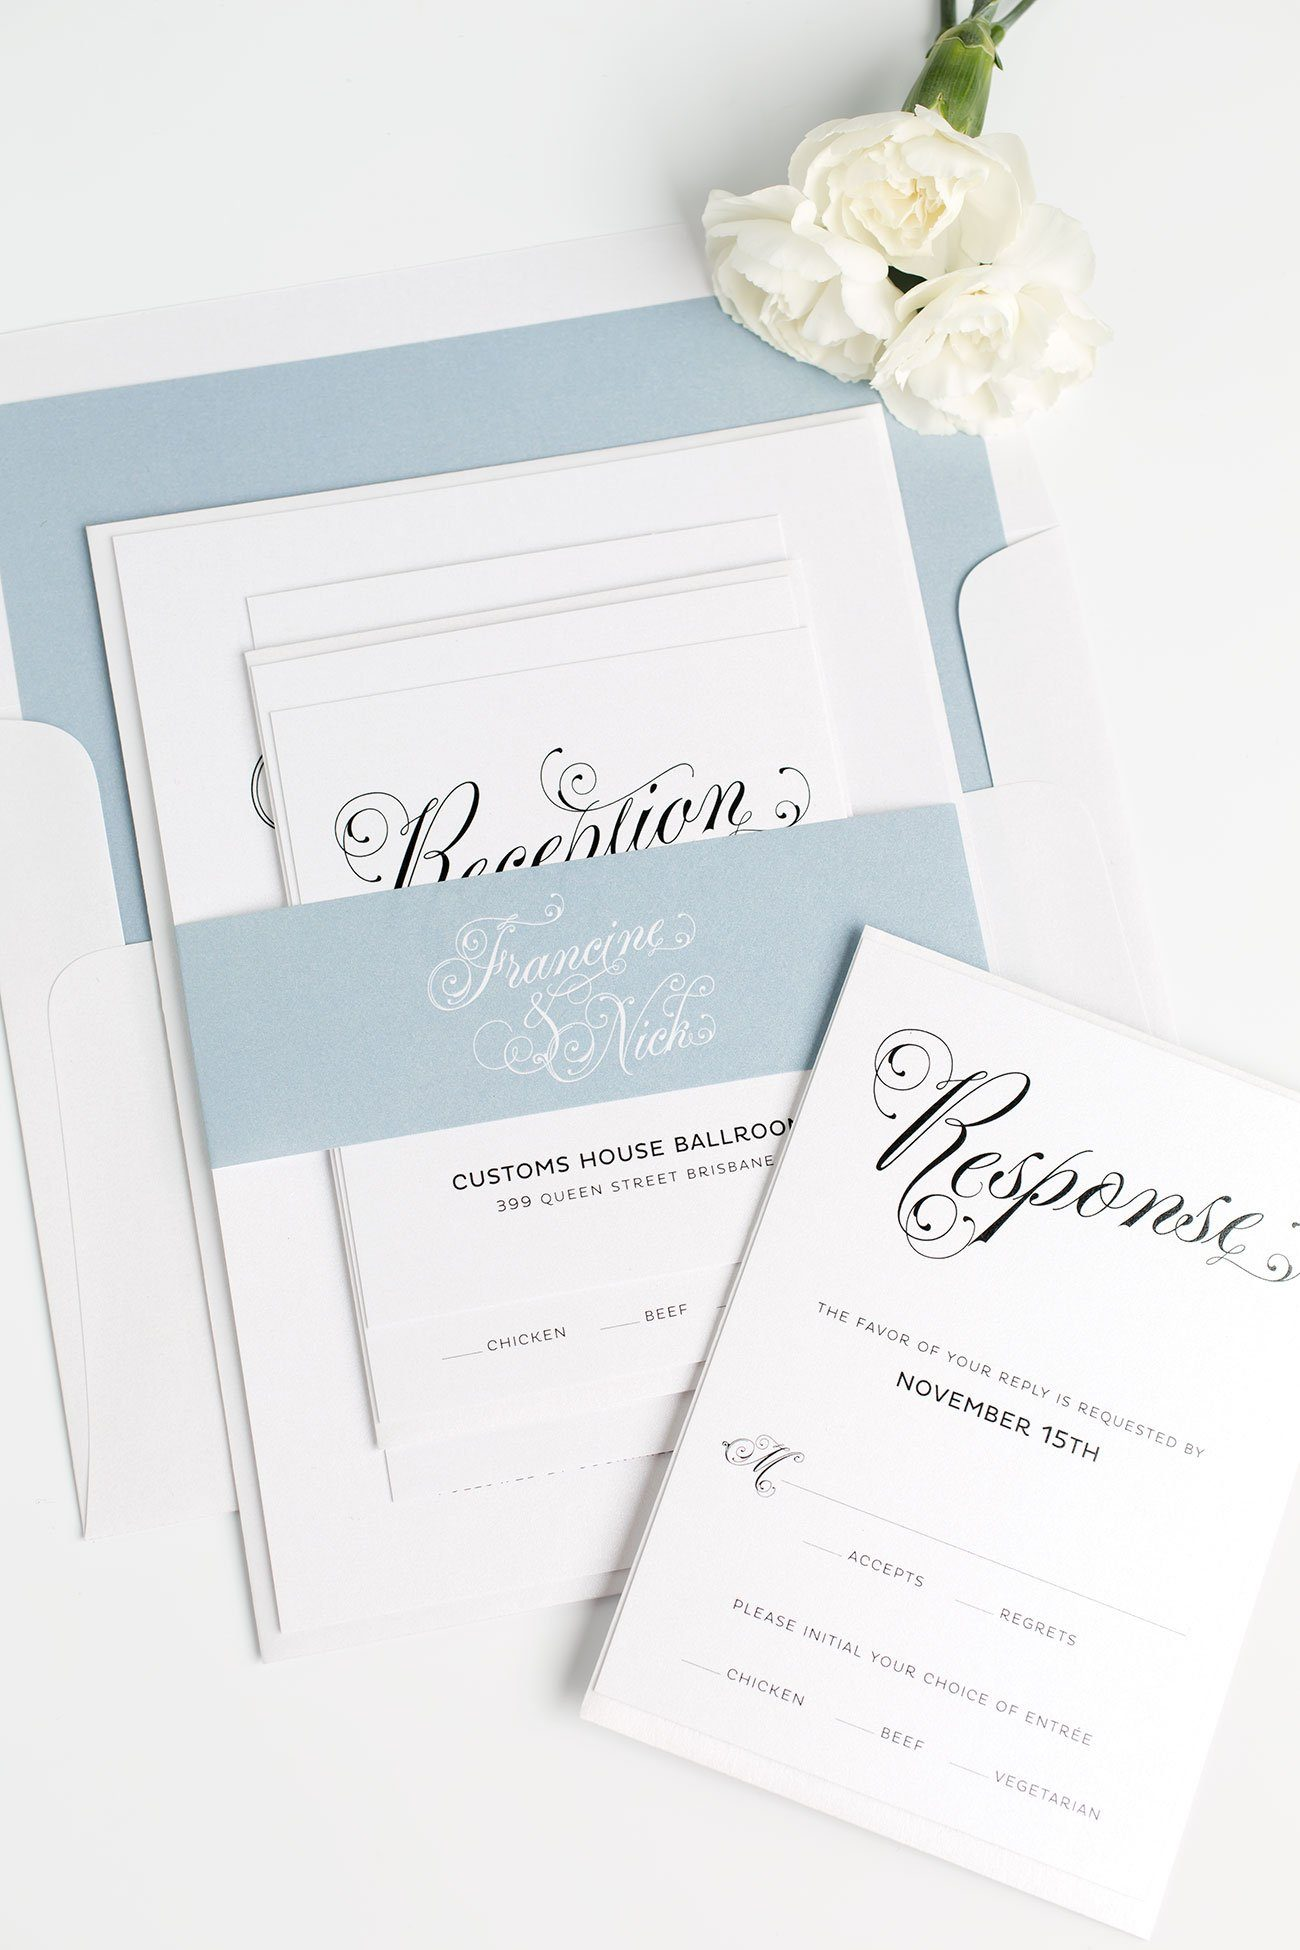 Glamorous Art Deco Wedding Invitations in Dusty Blue